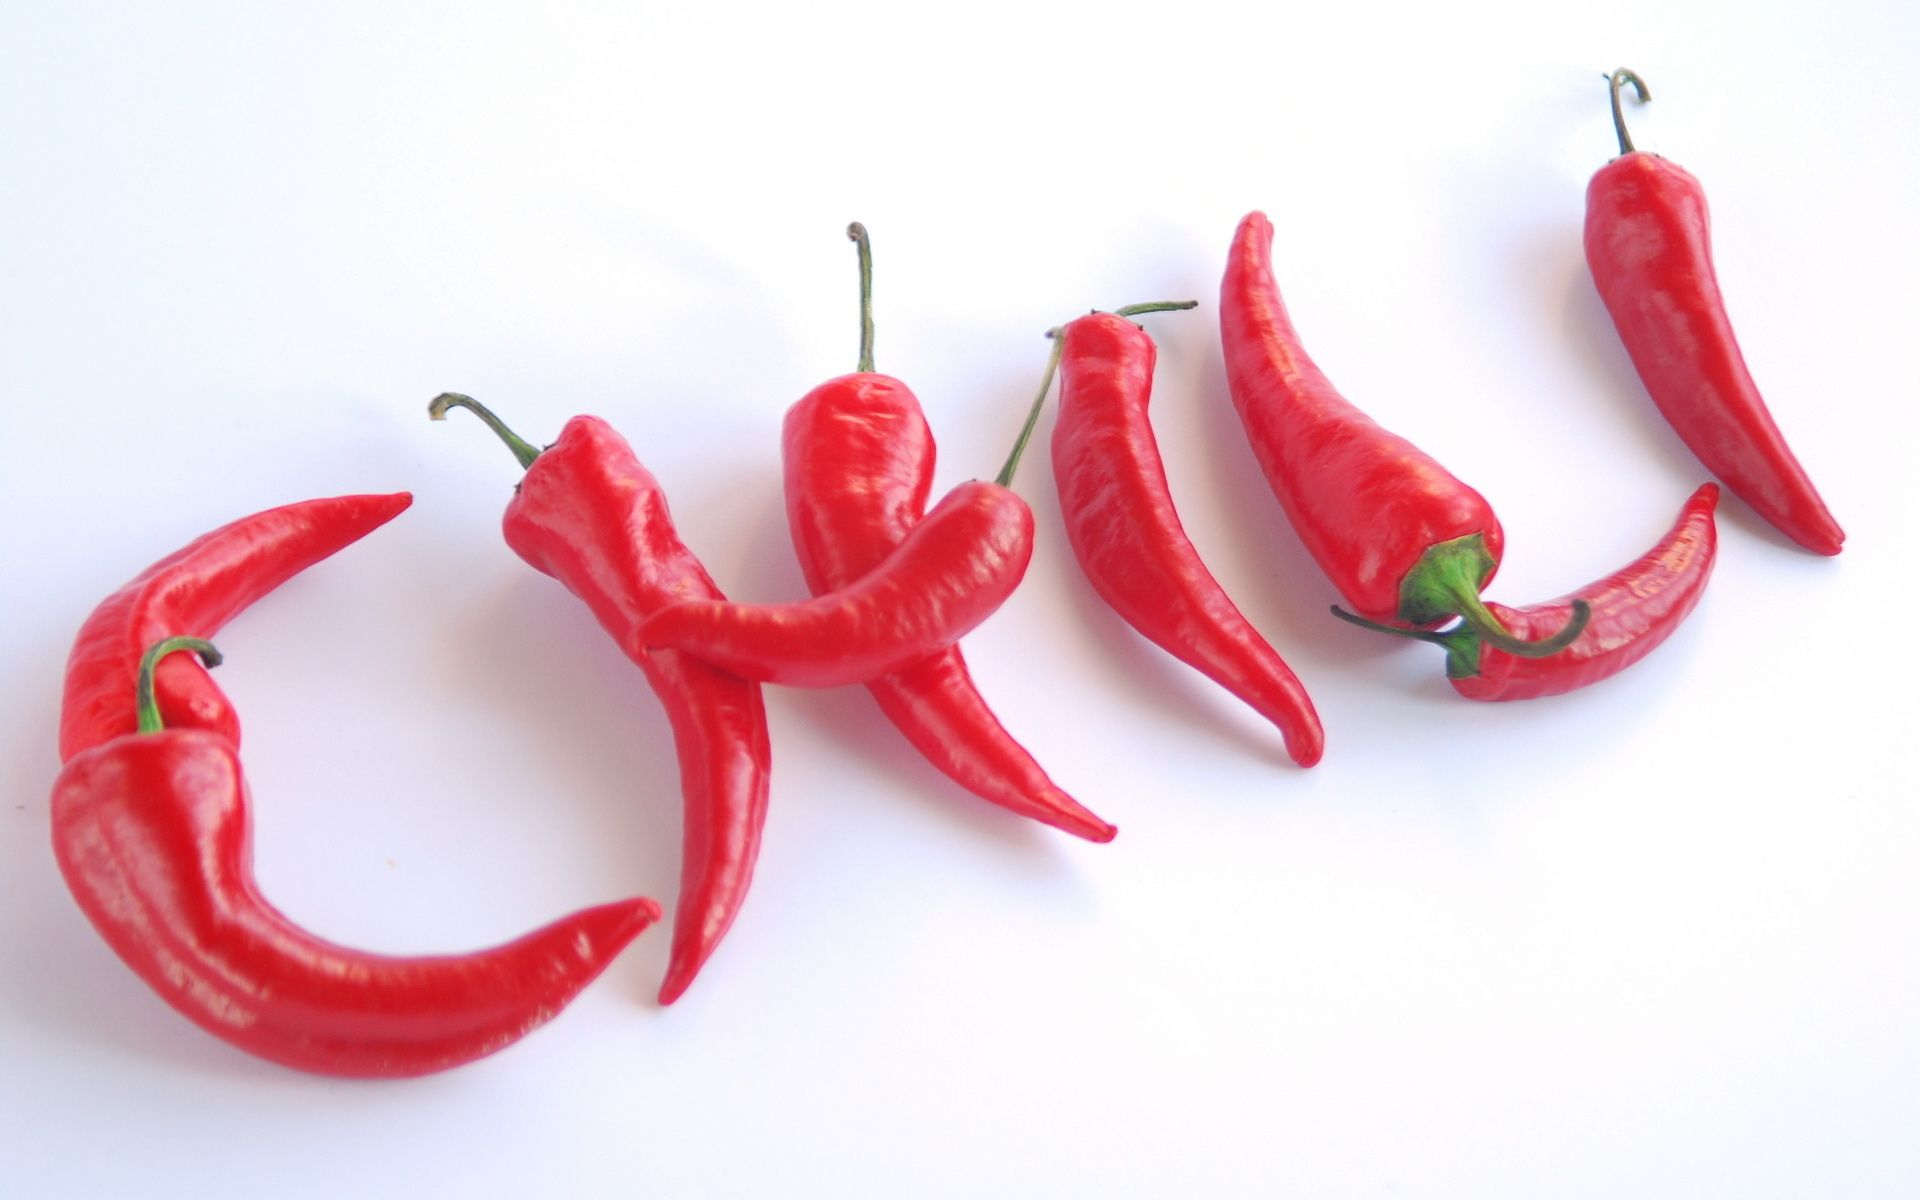 Red Chilli HD Wallpapers: Find Best Latest Red Chilli HD